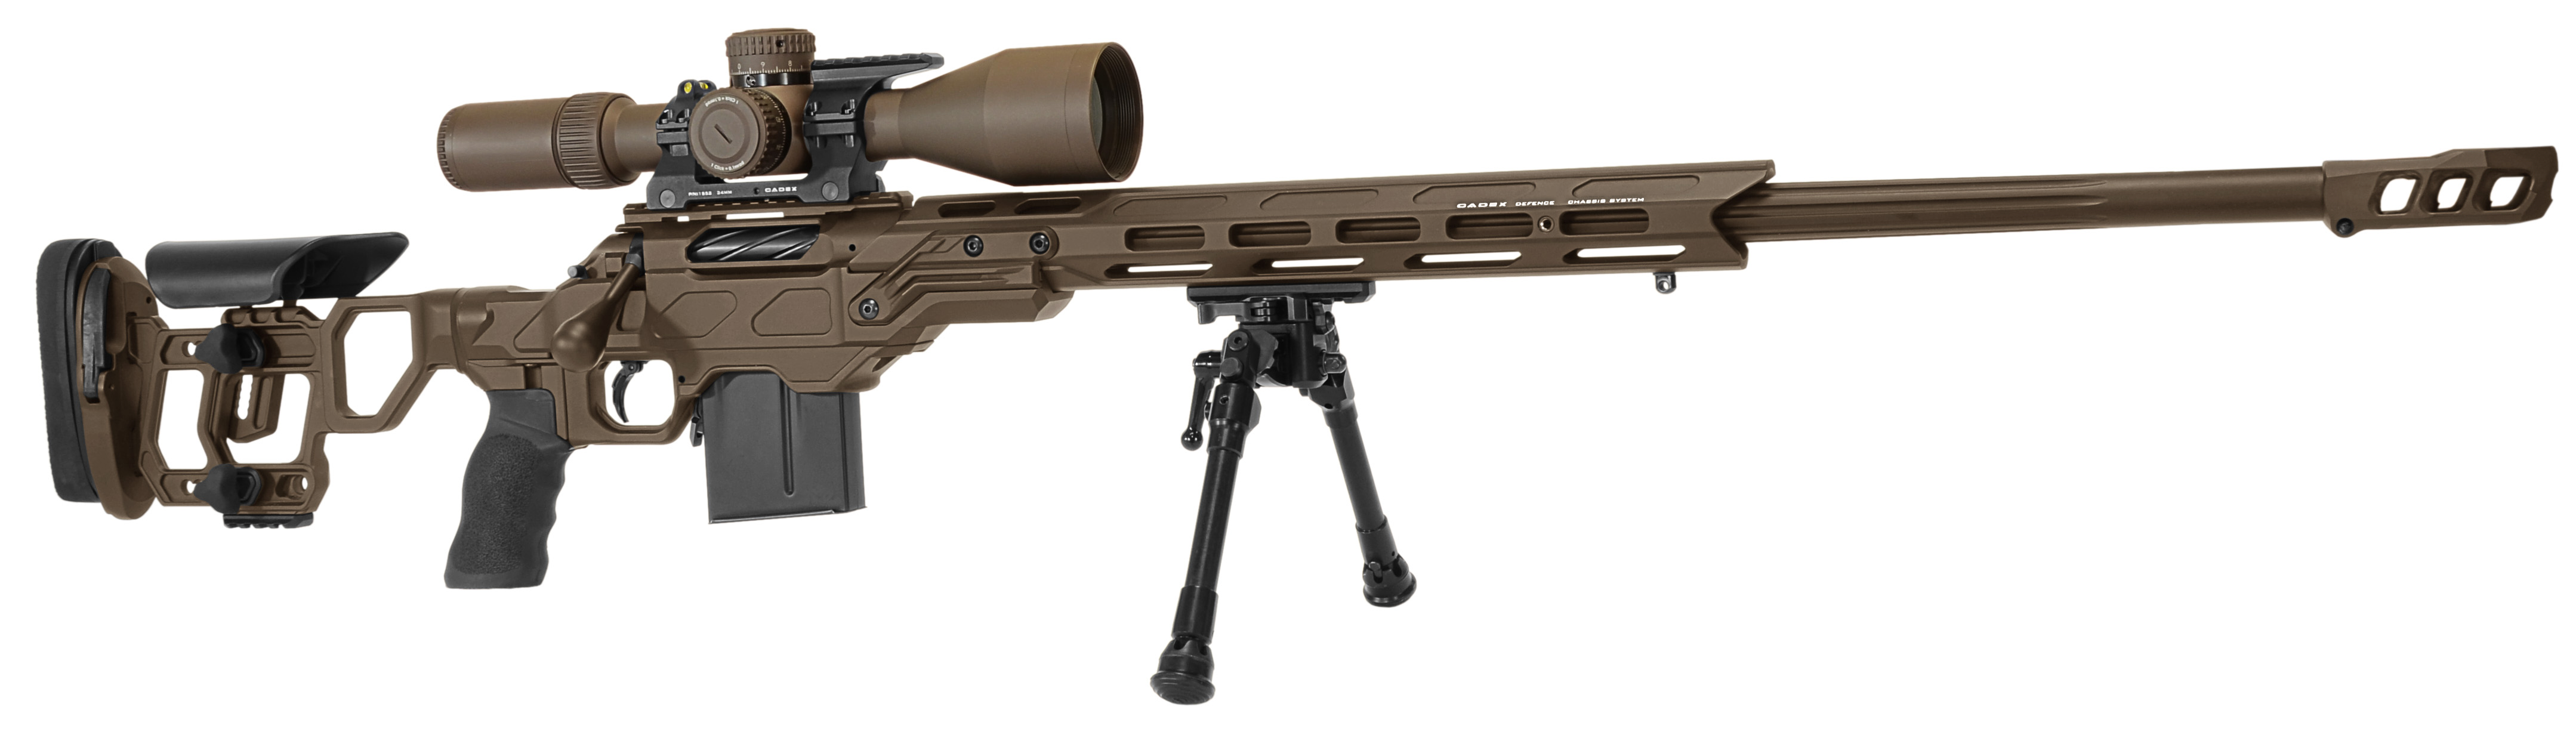 R7 Field Comp rifle